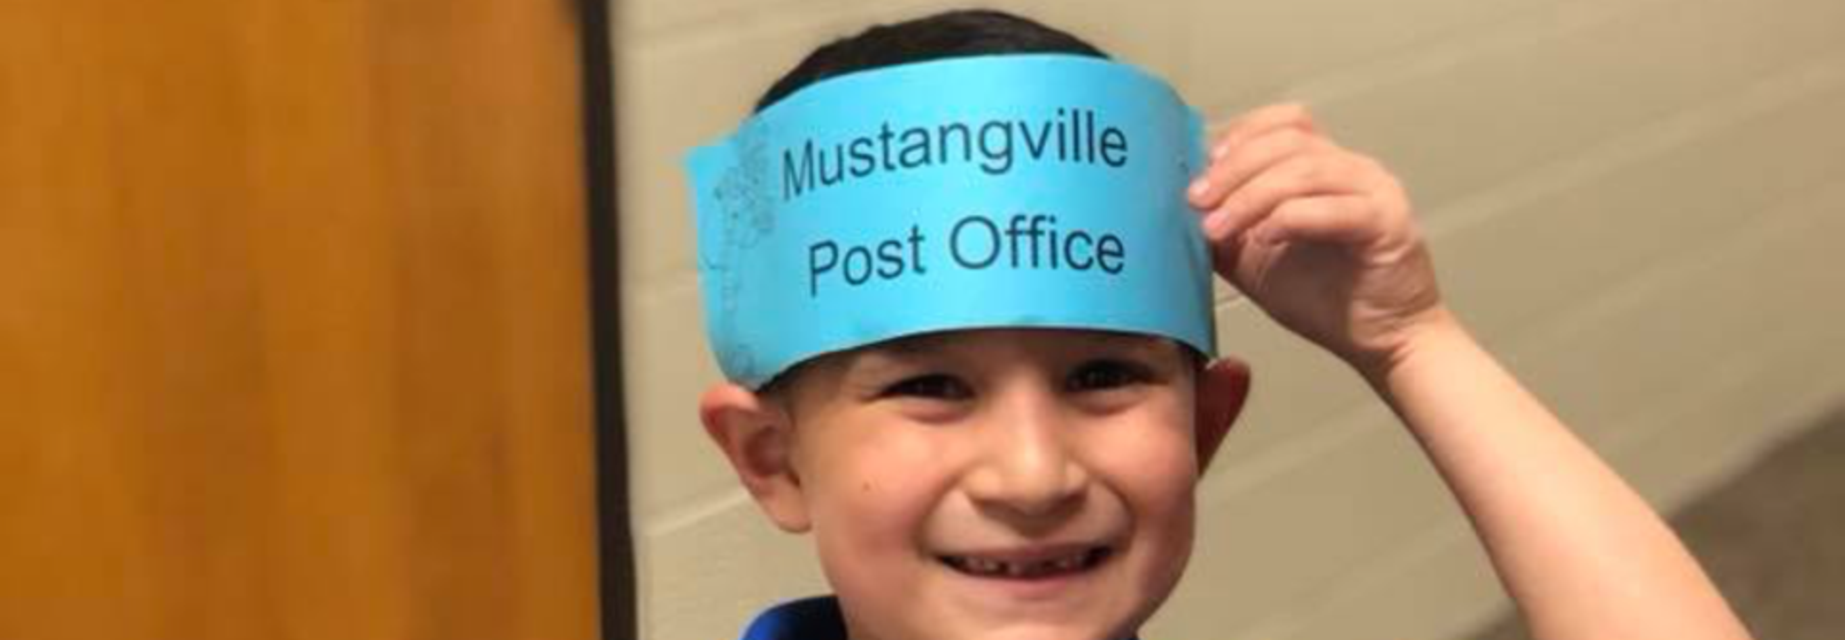 boy with Mustangville Post Office cap